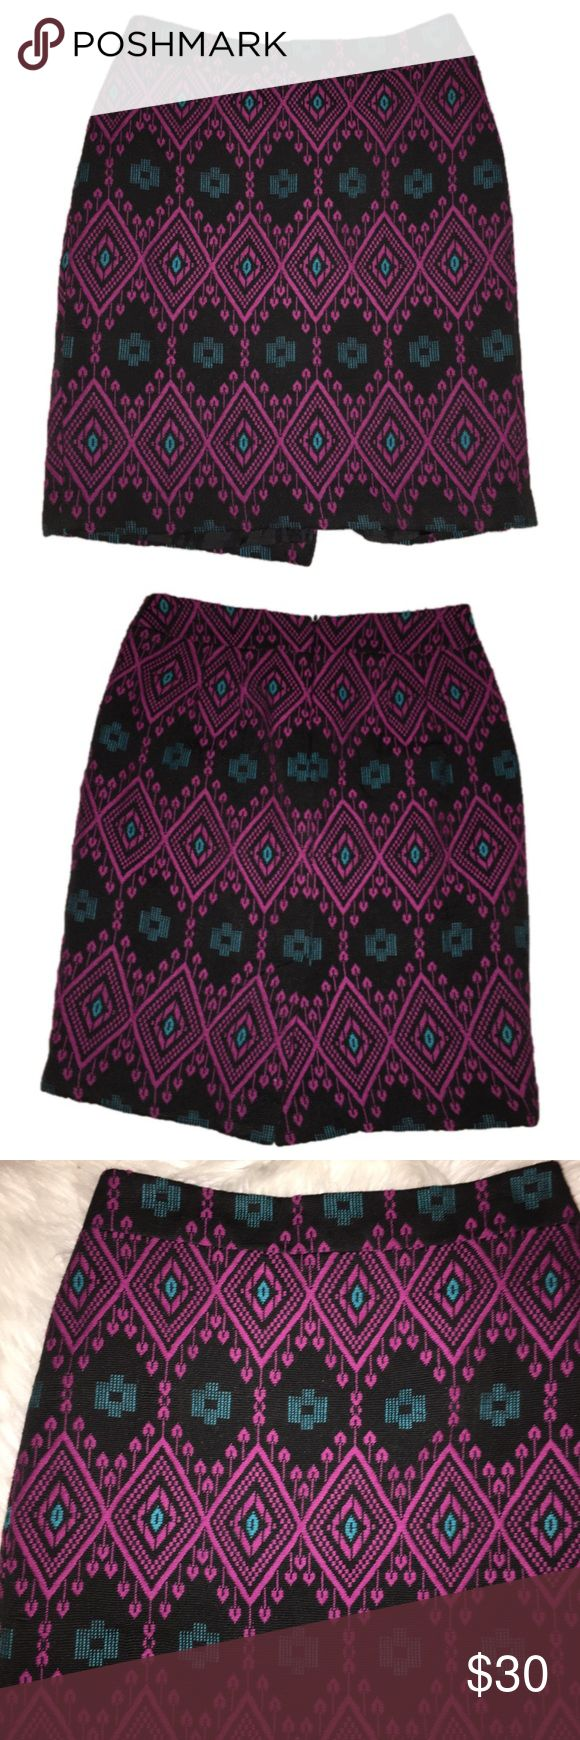 "Ann taylor Aztec print skirt Gorgeous skirt! Perfect for colder days since it's heavier material. This is from the petite line. Length 20"", waist 14"" laying flat. Beautiful colors including plum, turquoise and black Ann Taylor Skirts Pencil"